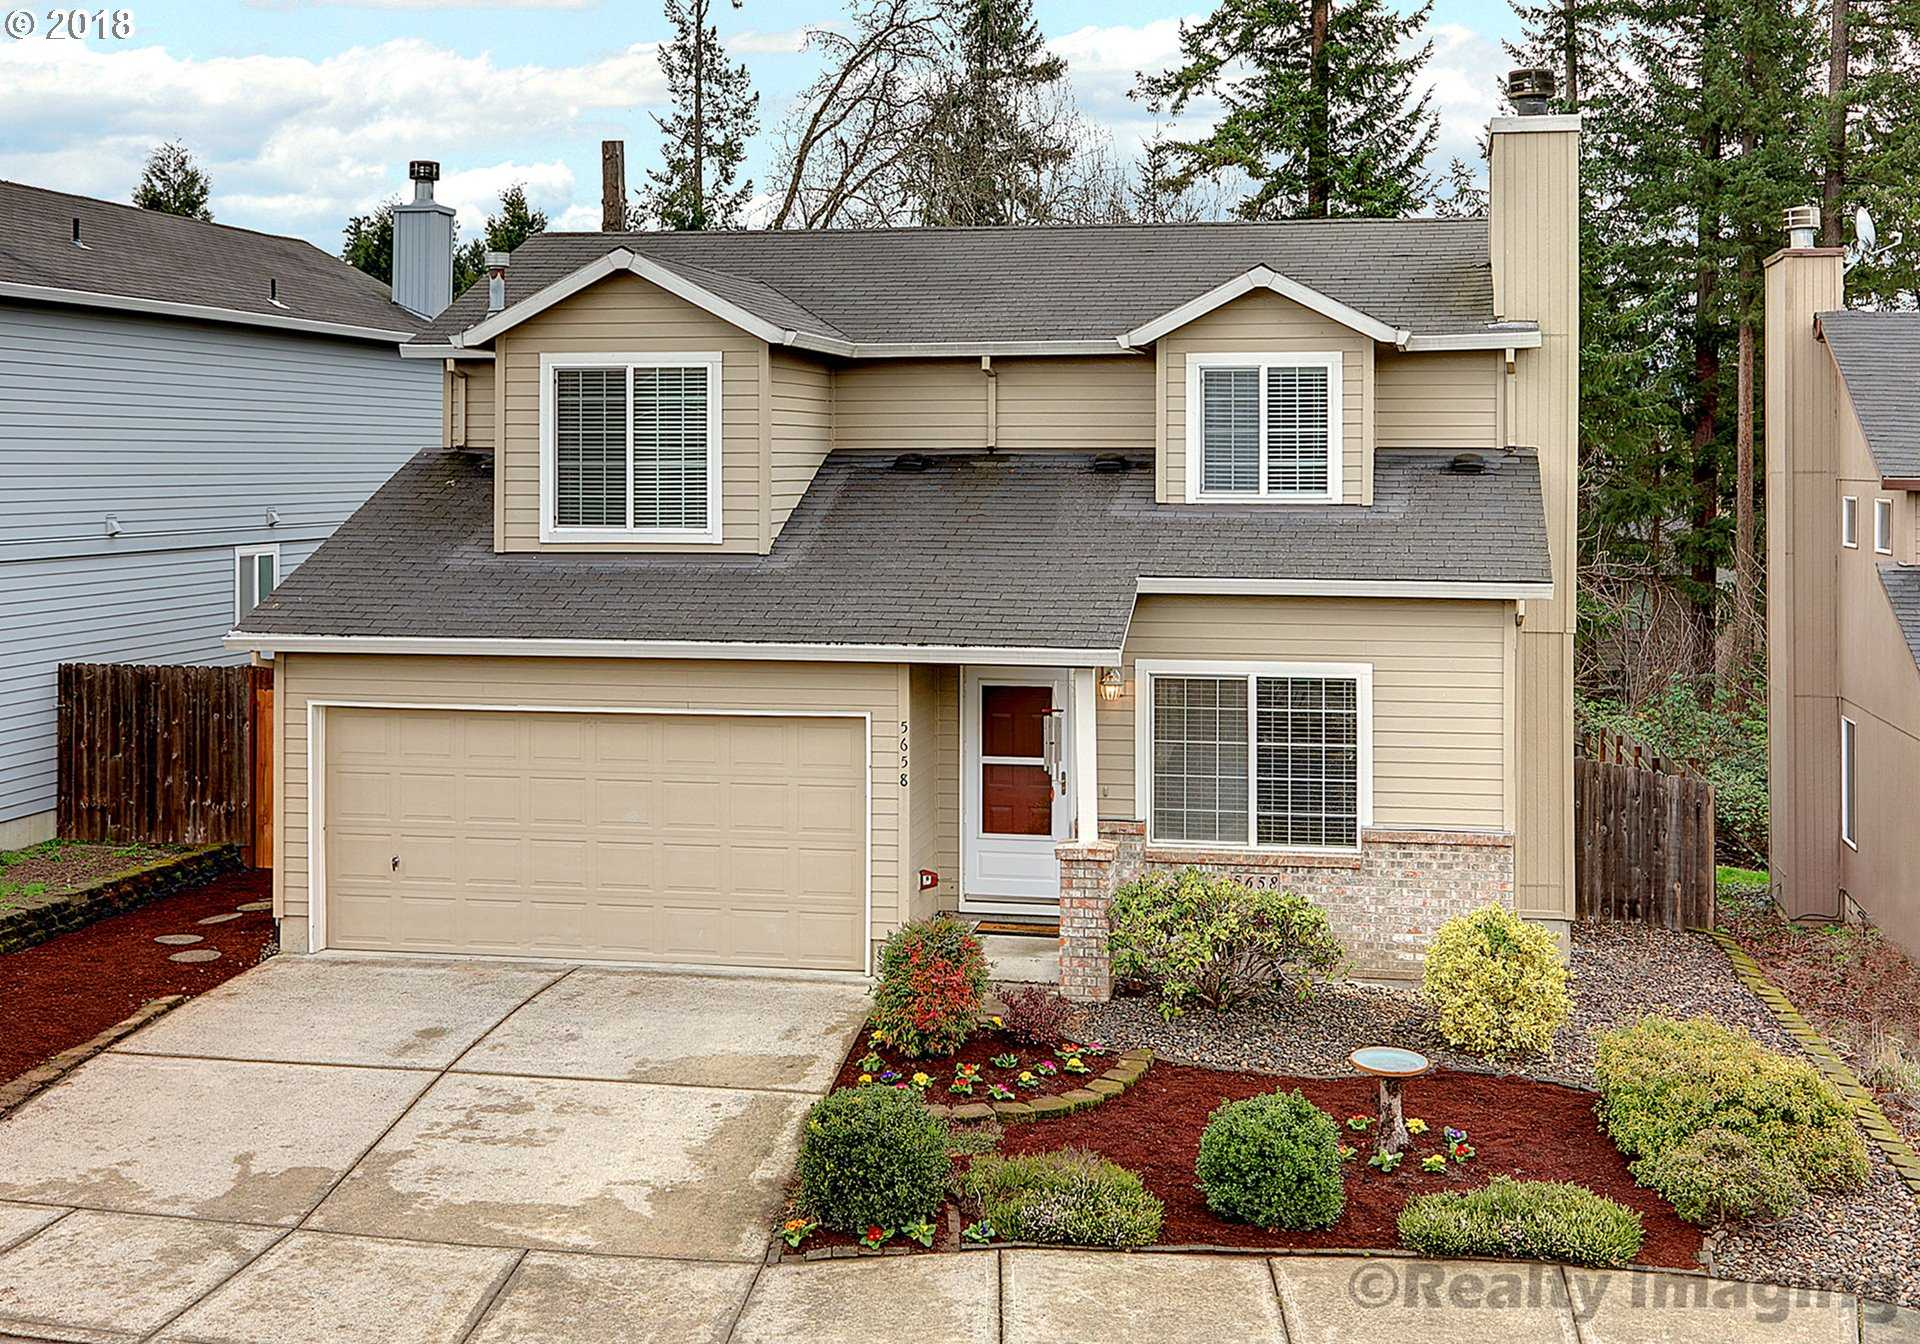 Mls 18313646 5658 nw 172nd ter portland or 97229 for 3365 nw 172nd terrace